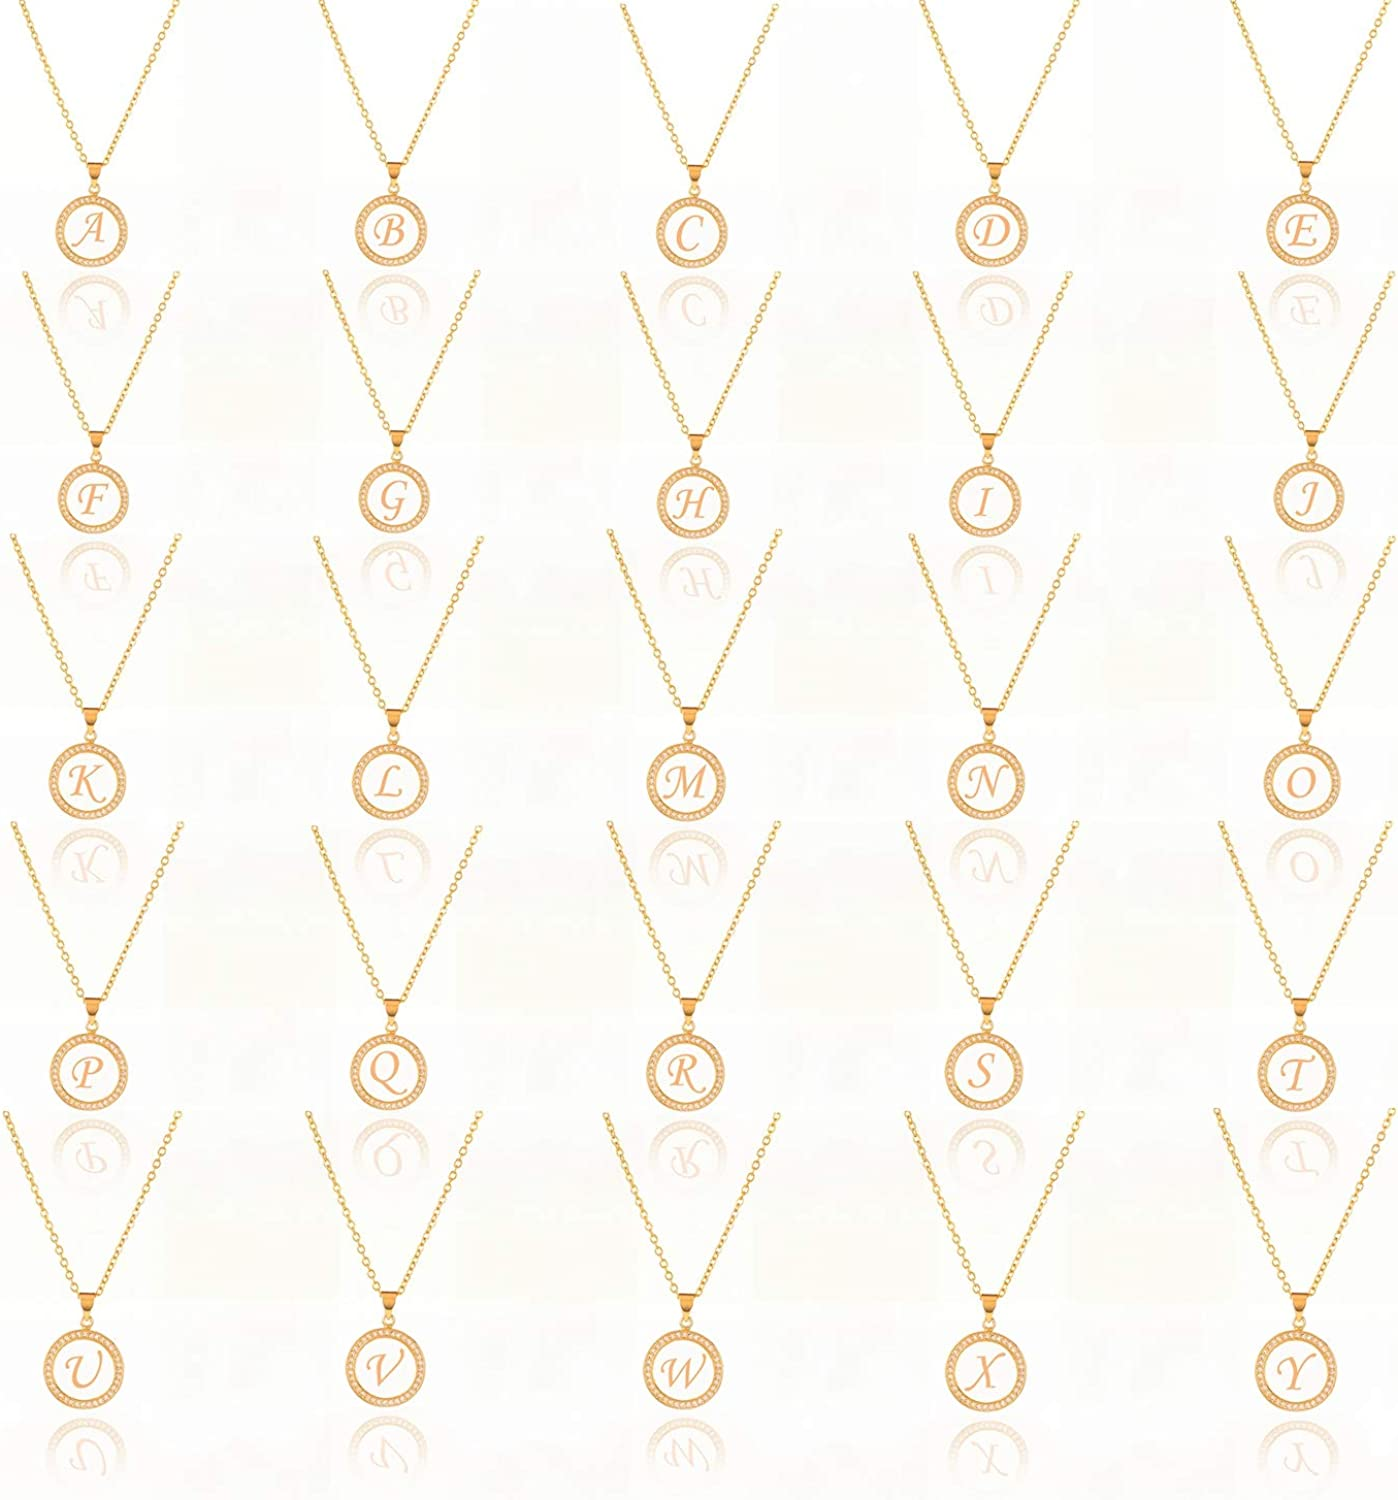 T-White Gold Samiaya Fashion Charm Gold 26 Alphabet Pendant Necklace Micro Pave Zircon Initial Letter Necklaces Couple Name Necklace